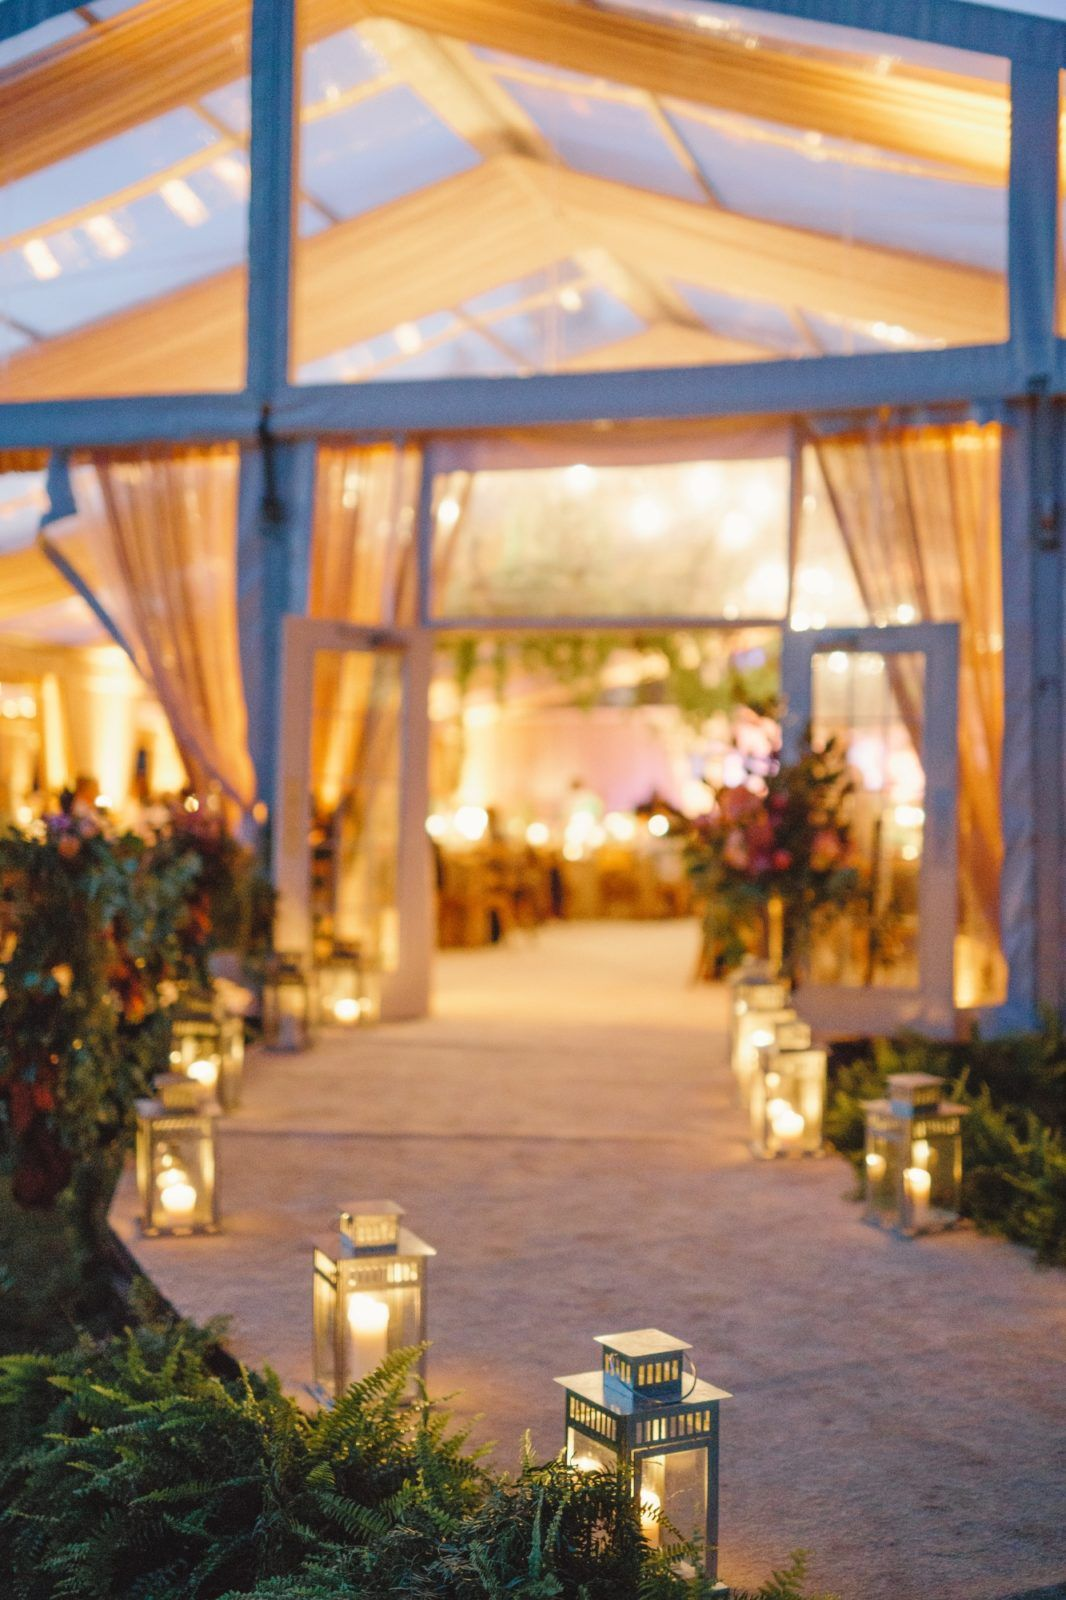 Wedding Gallery 8 Event Theory Clearspan Tenting Custom Wedding Events Drapin Traverse City Wedding Michigan Wedding Venues Northern Michigan Weddings